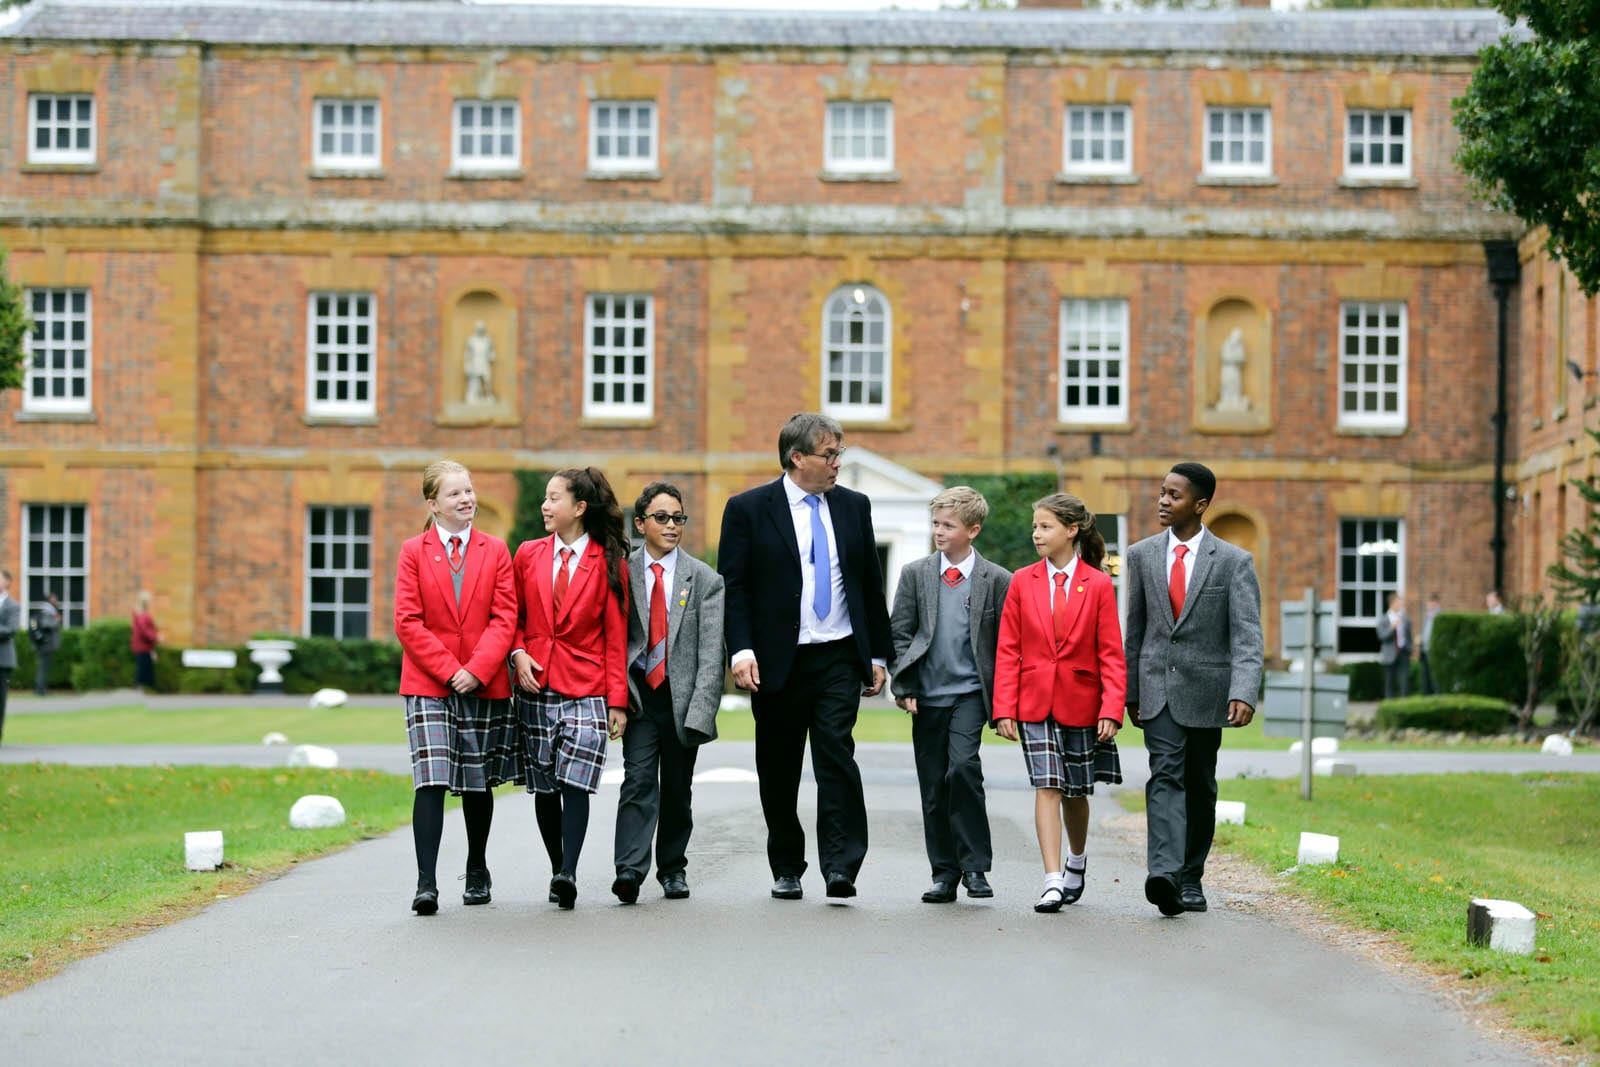 Headmaster walking with pupils